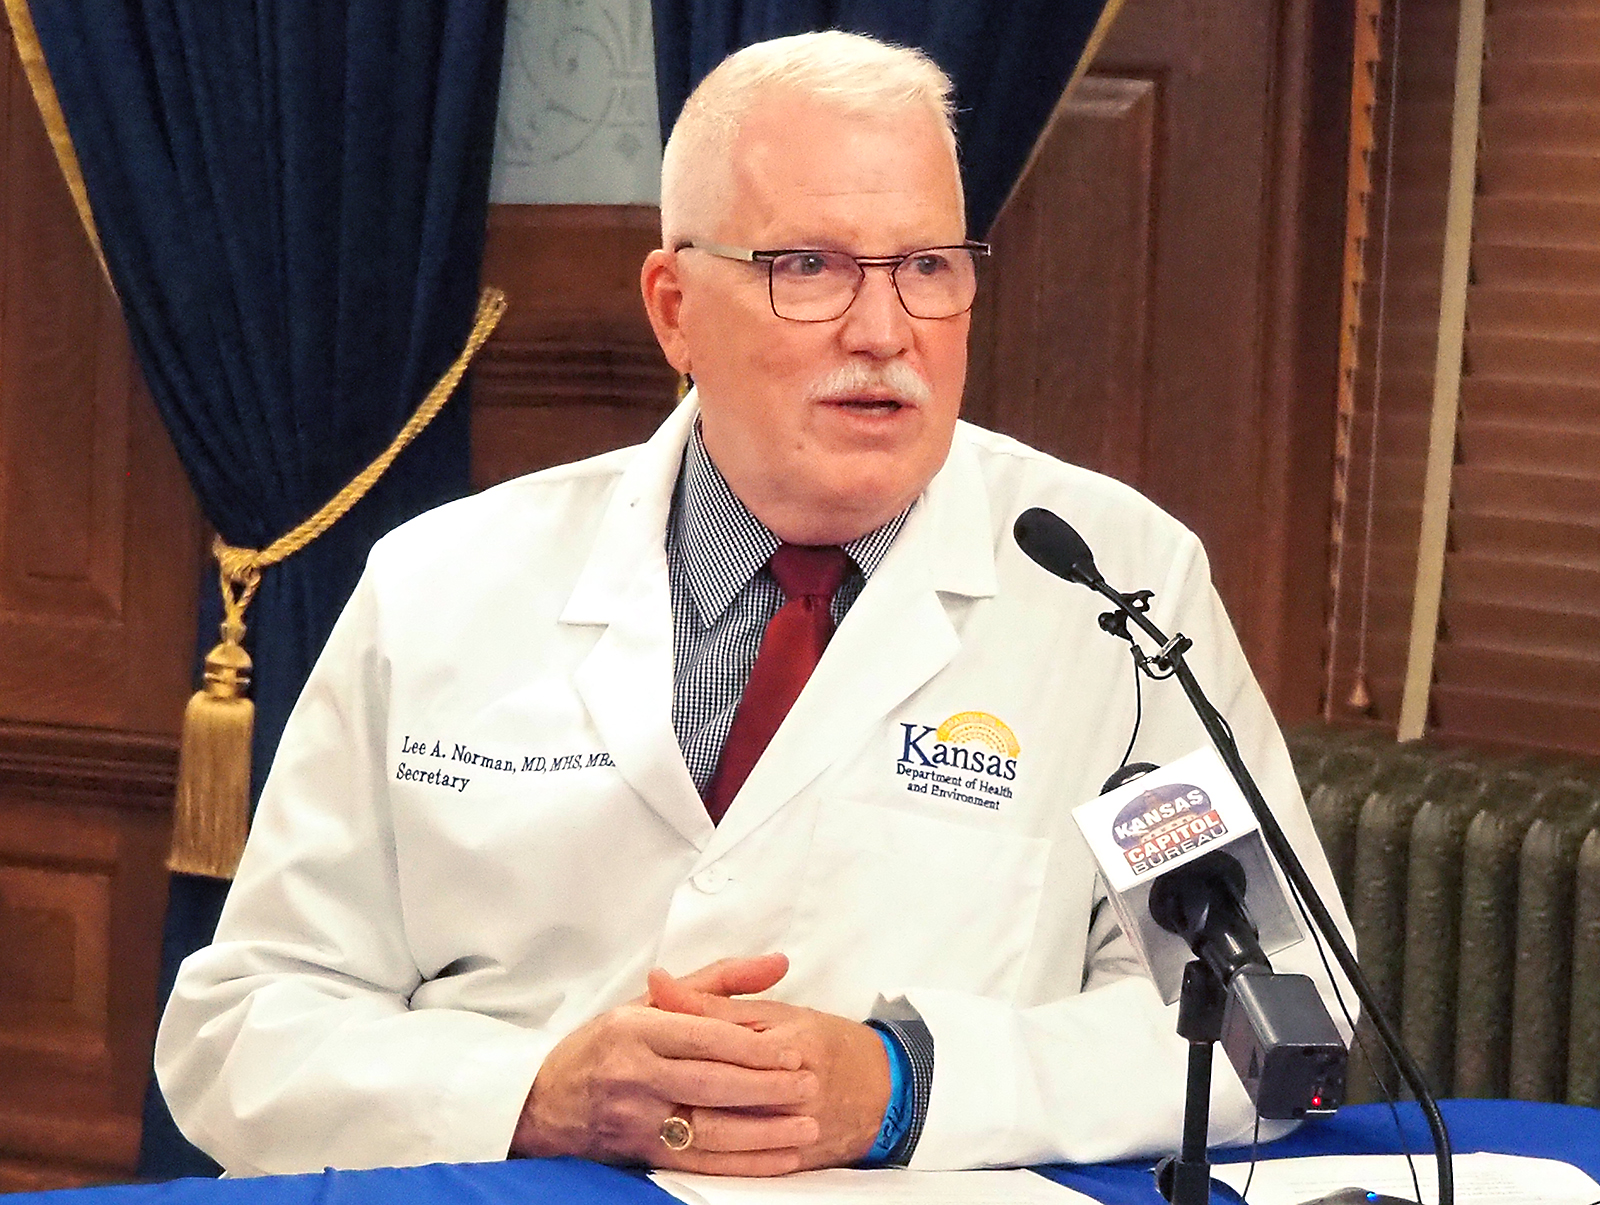 Lee Norman, secretary of the Kansas Department of Health and Environment. (July 29, 2020, photo by Sherman Smith/Kansas Reflector)